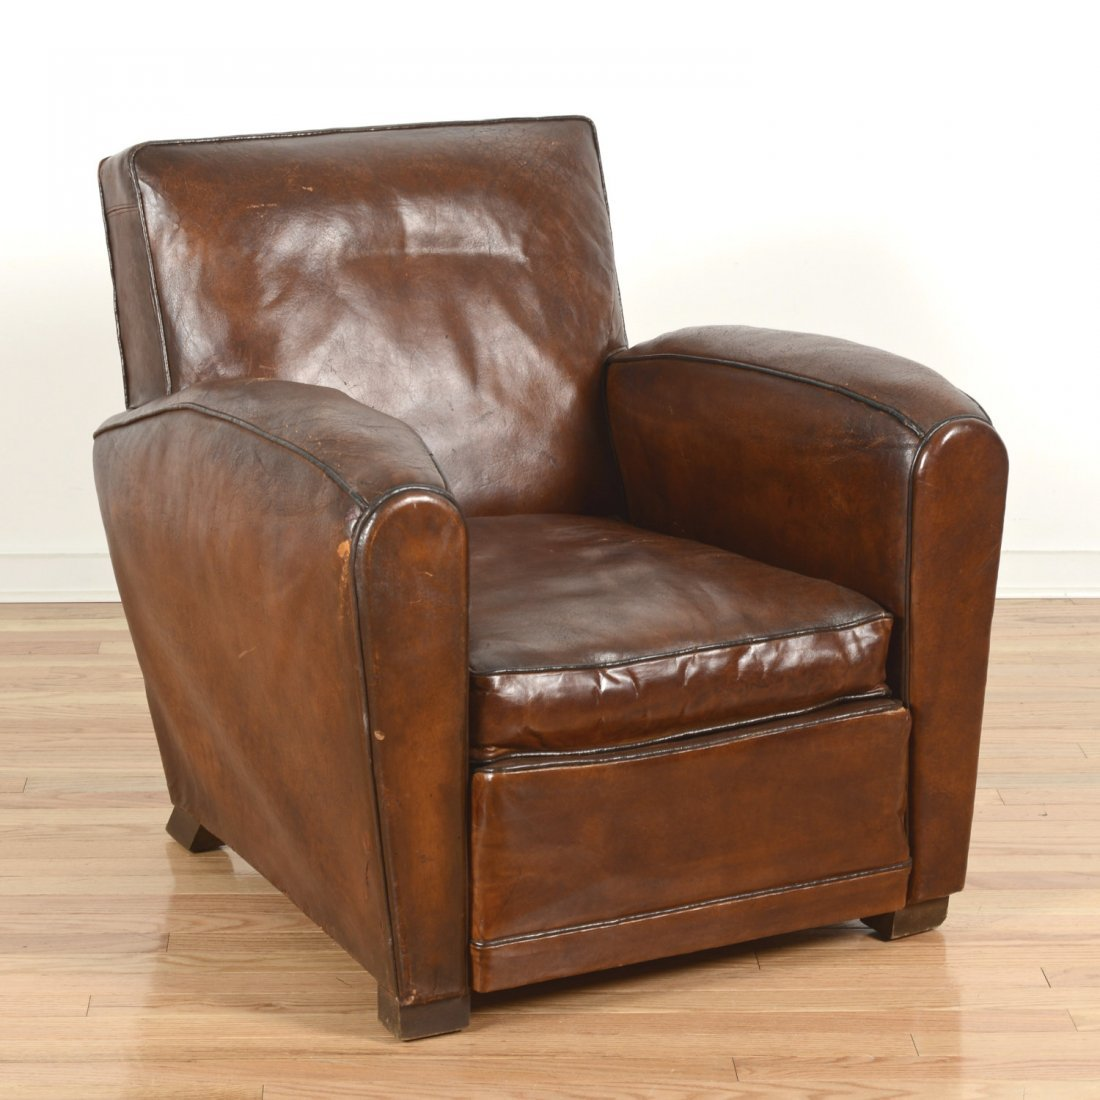 French Art Deco period leather club chair